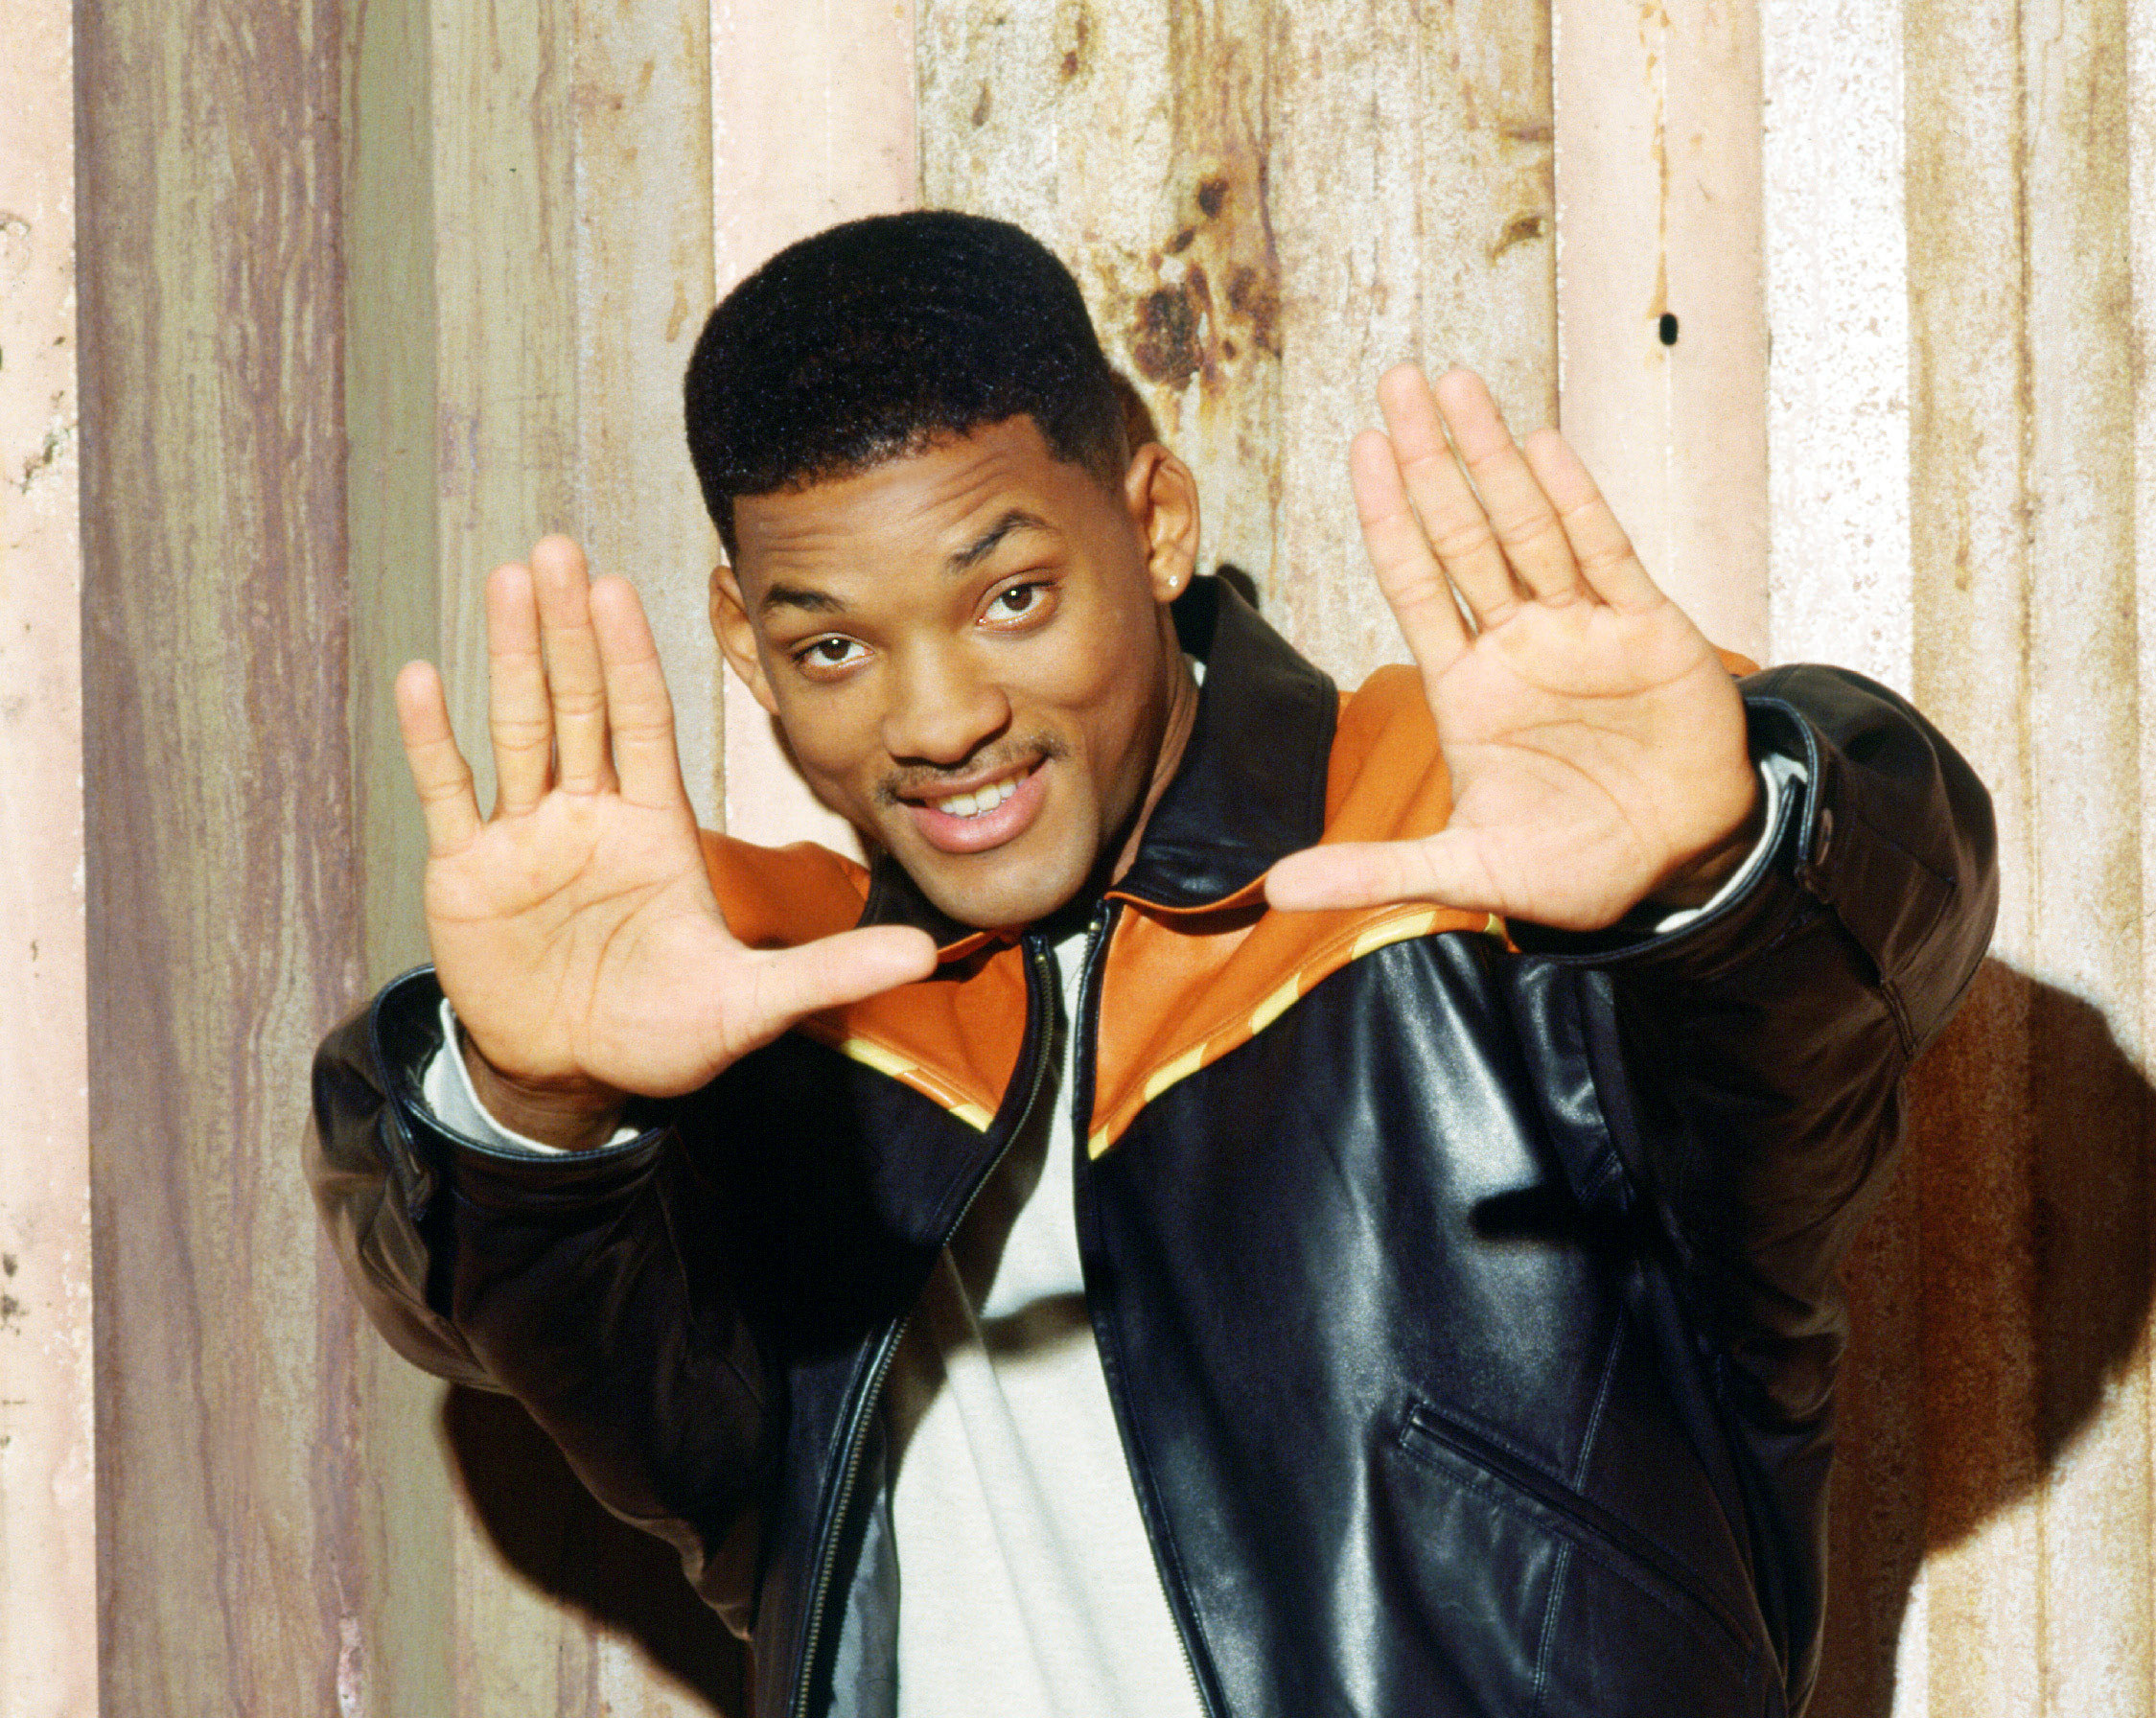 Will Smith smiling and holding his hands up